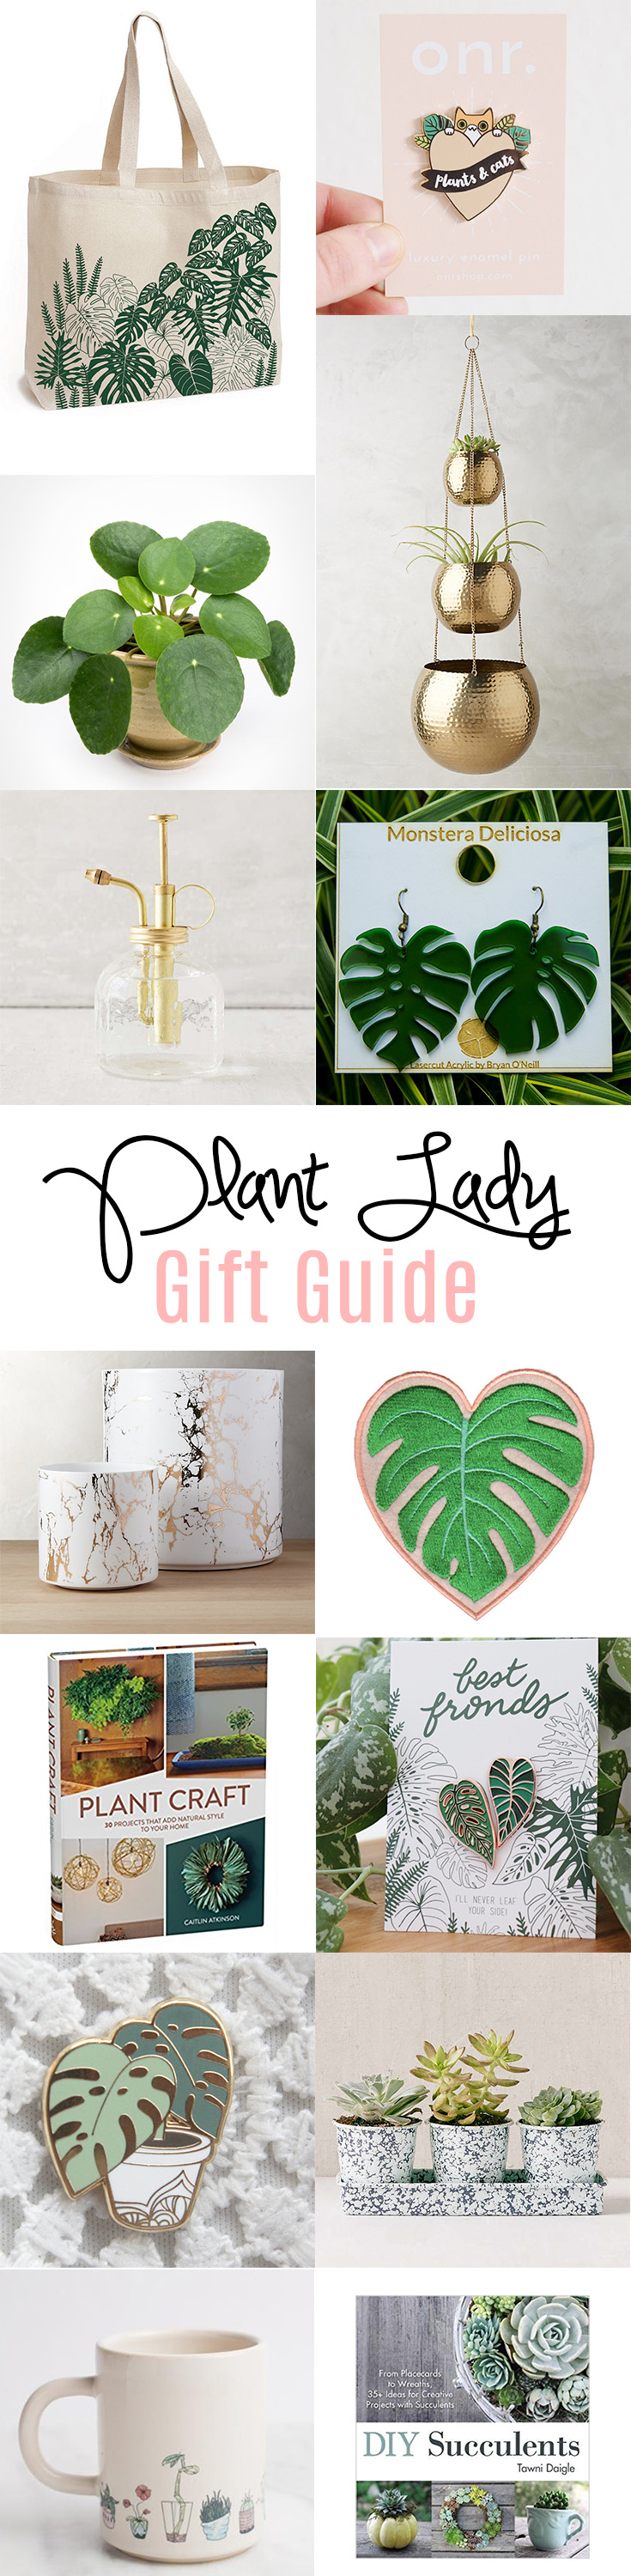 Gifts perfect for the plant lady in your life. #plants #gifts #plantlady #holidays #christmas